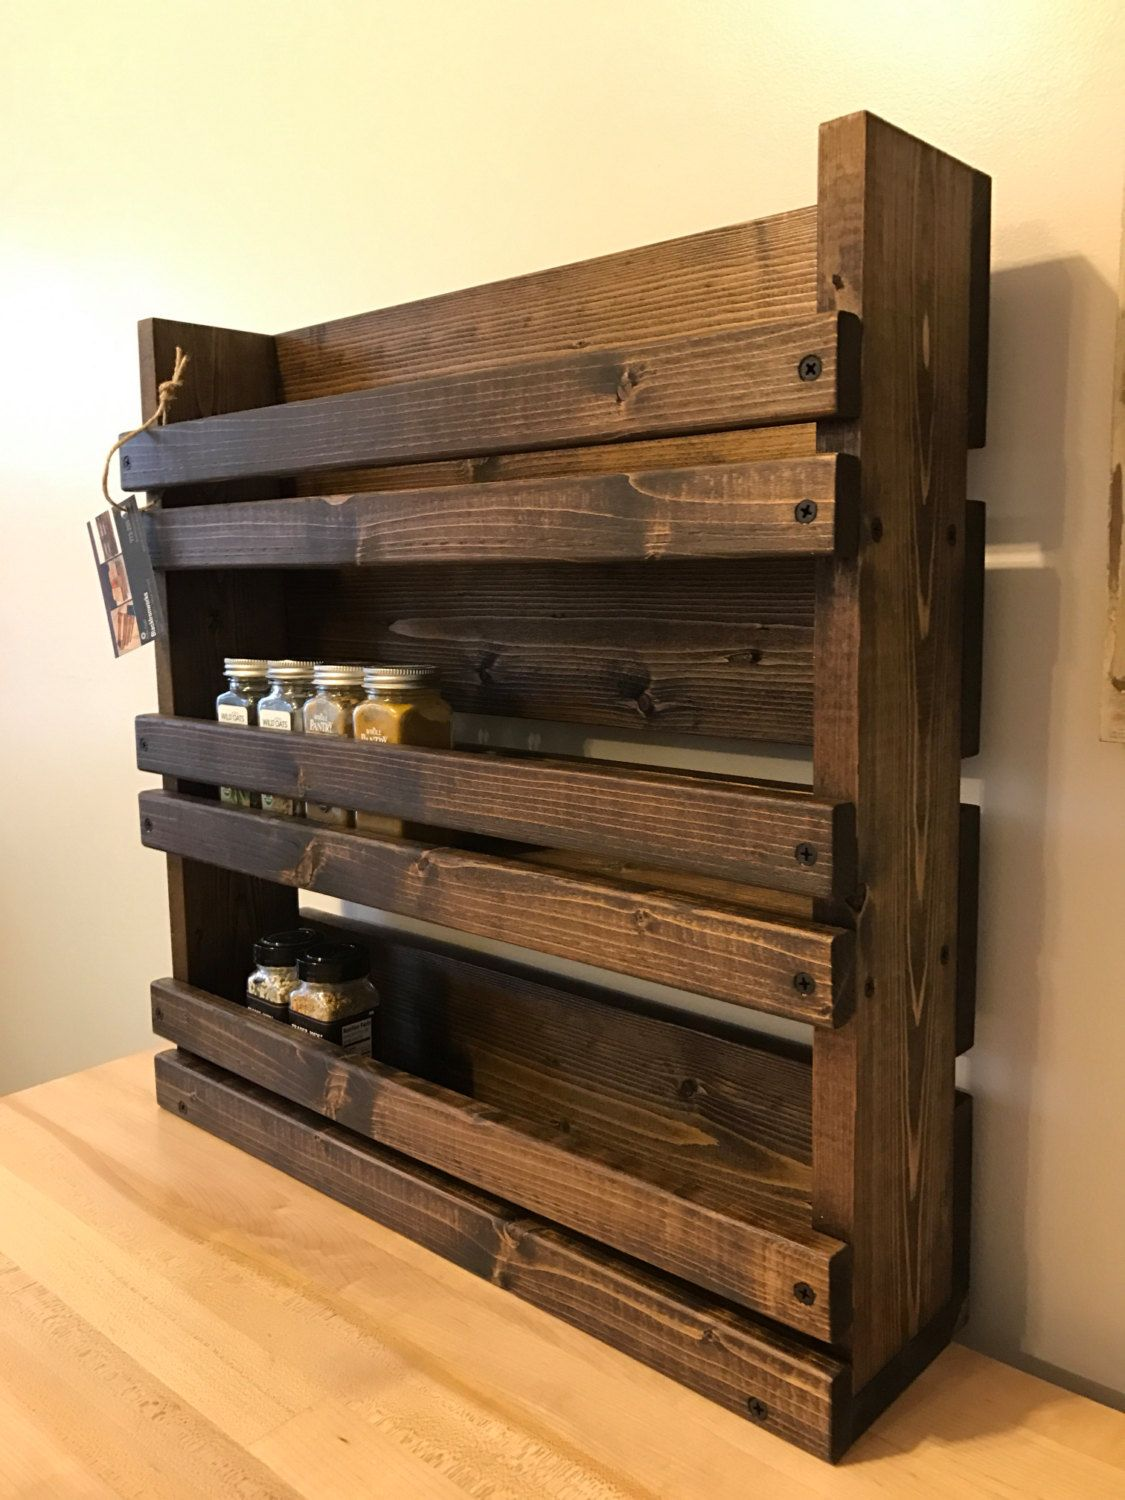 Wood Spice Rack For Wall Cool Spice Up Your Kitchen With Our Simple And Rustic Style Solid Wood Design Inspiration